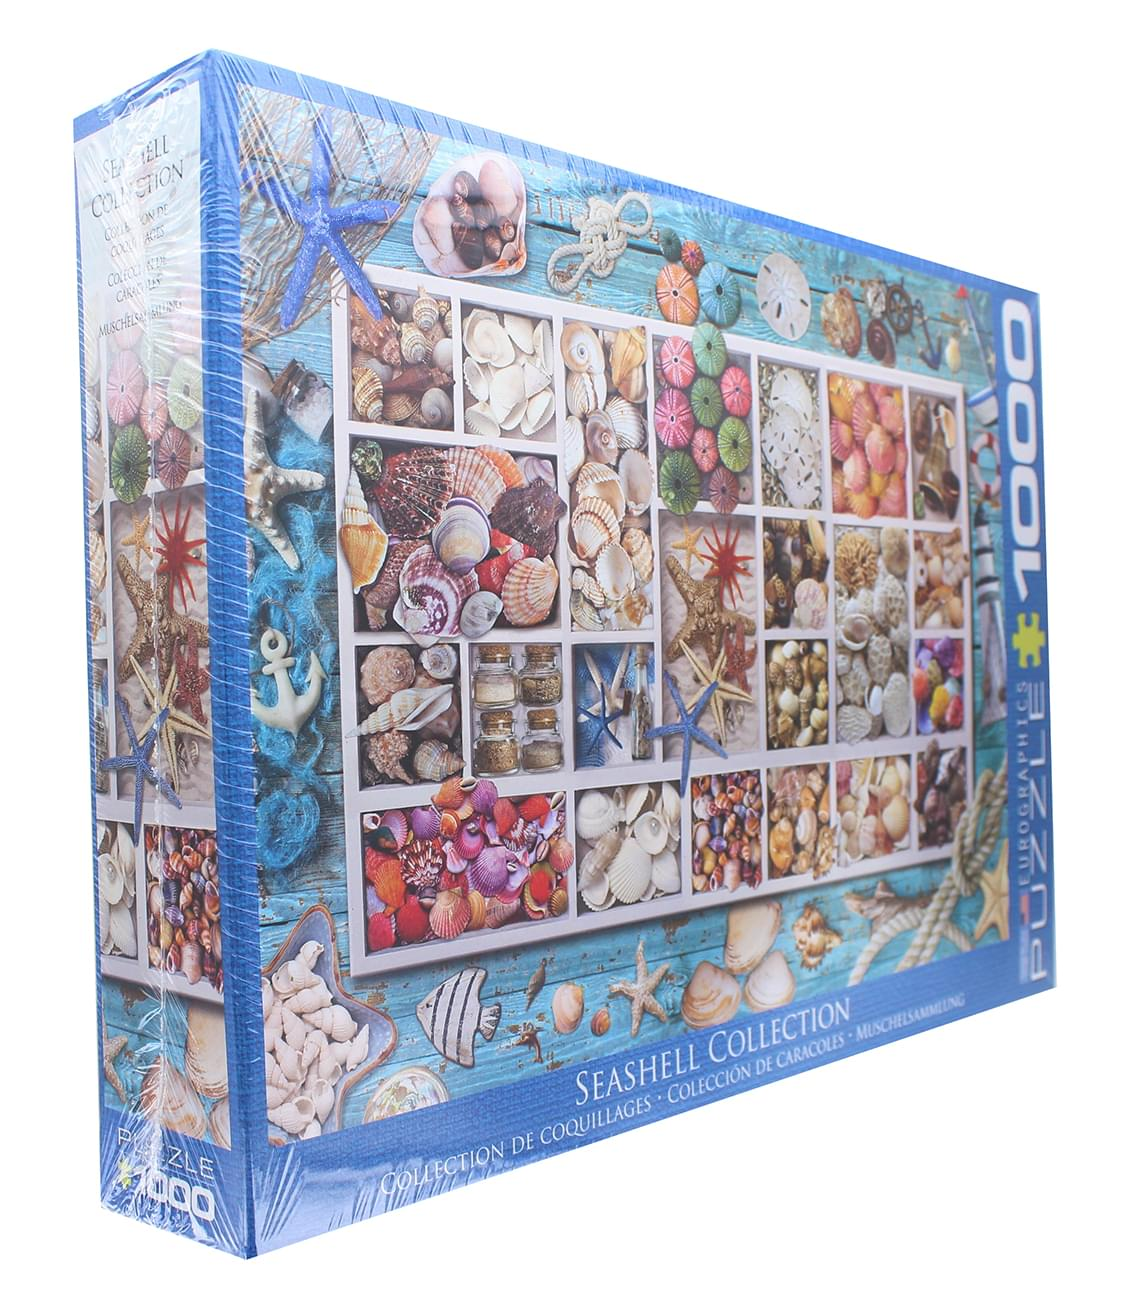 Seashell Collection 1000 Piece Jigsaw Puzzle